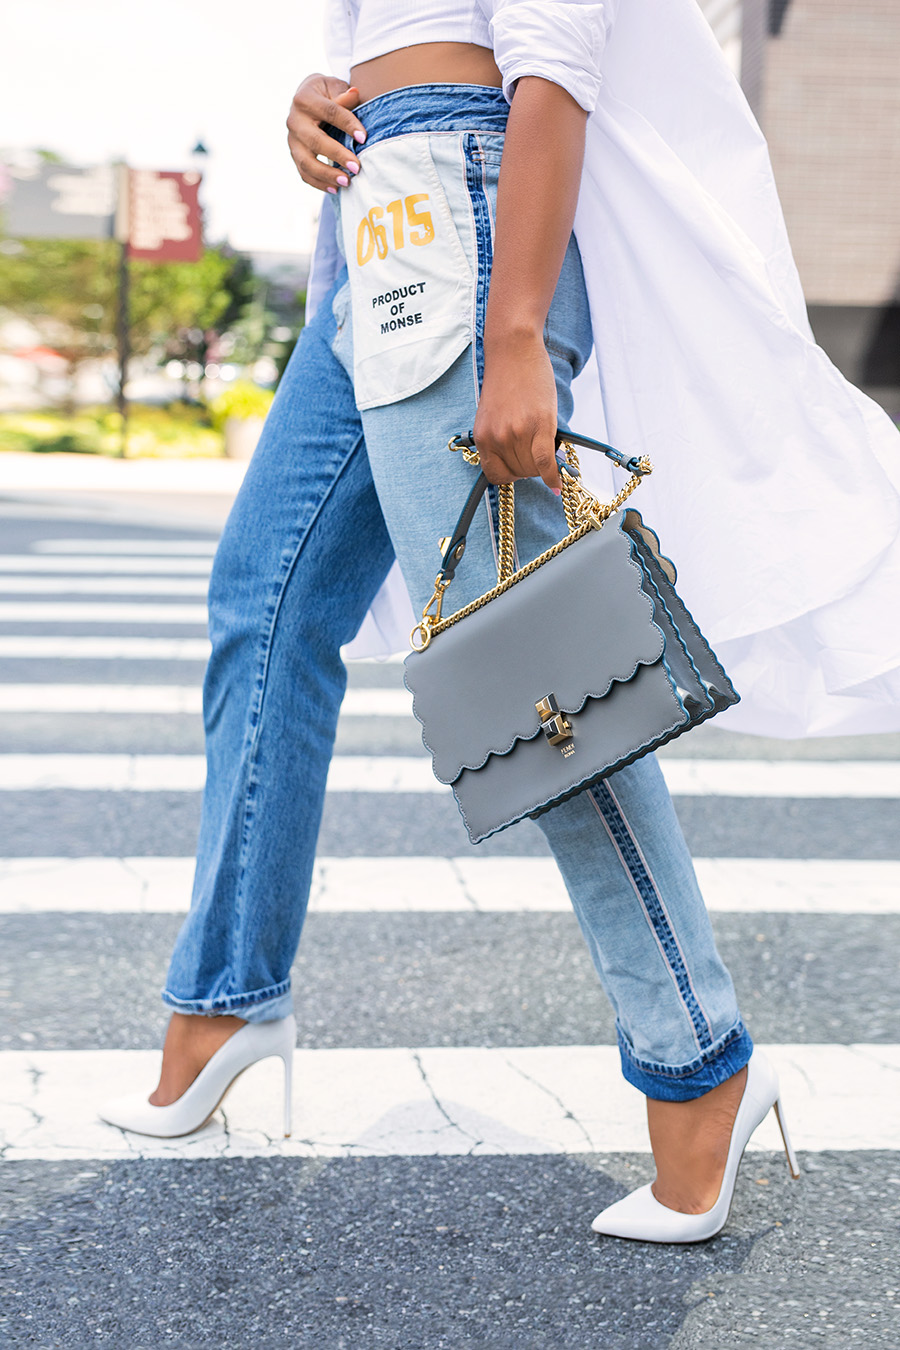 Monse jeans and white pumps